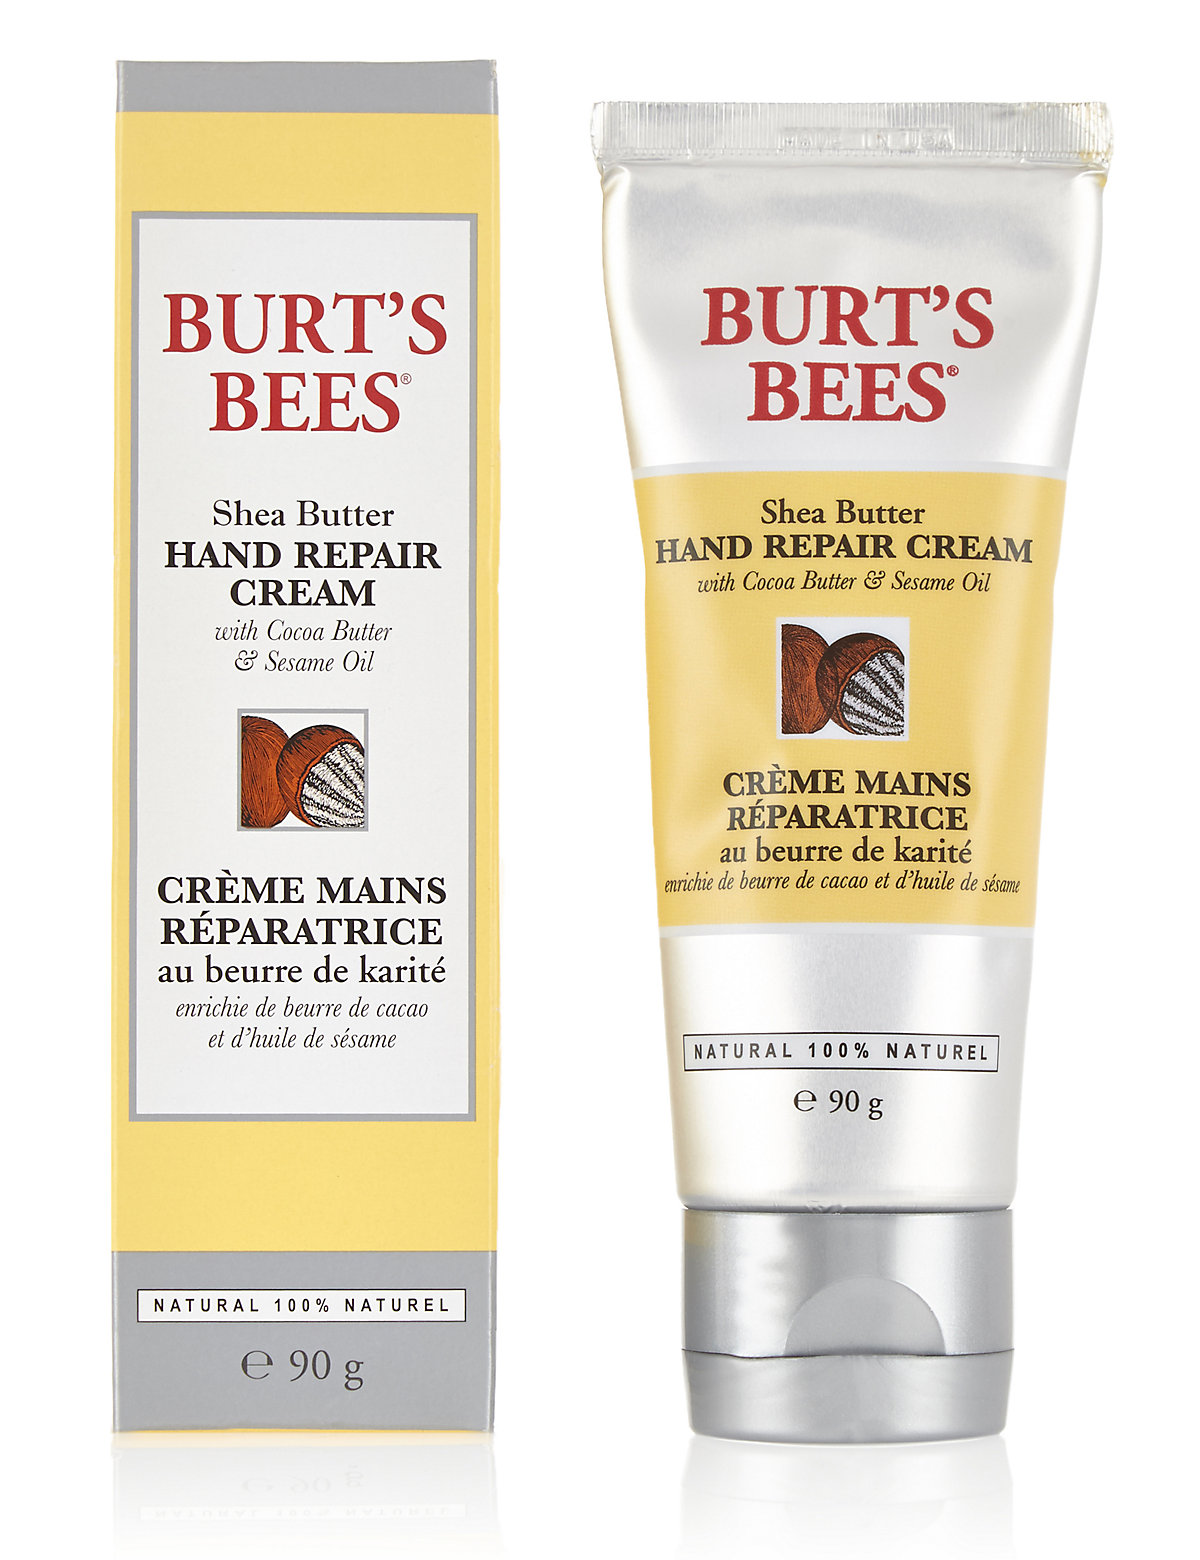 Burts Bees Shea Butter Hand Repair Cream 90g